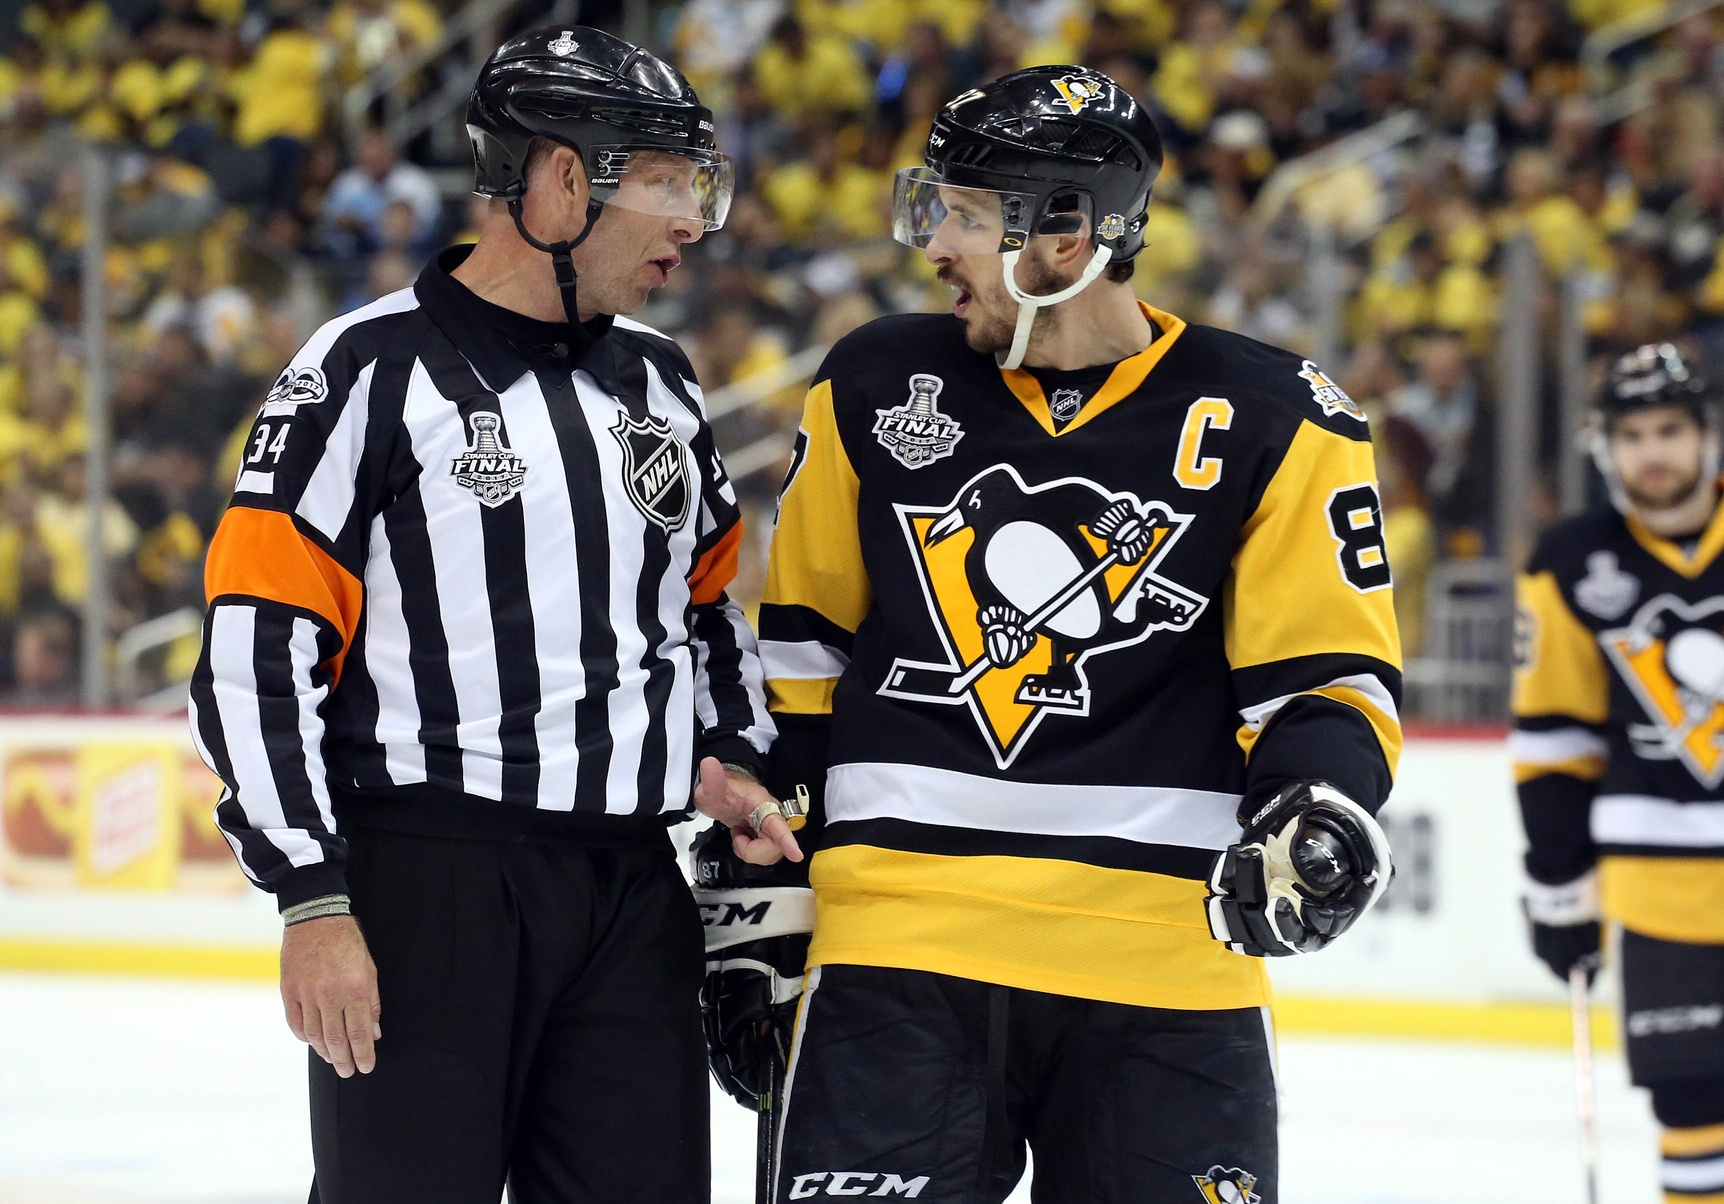 Pittsburgh Penguins Fall Short in Quest for Three-Peat